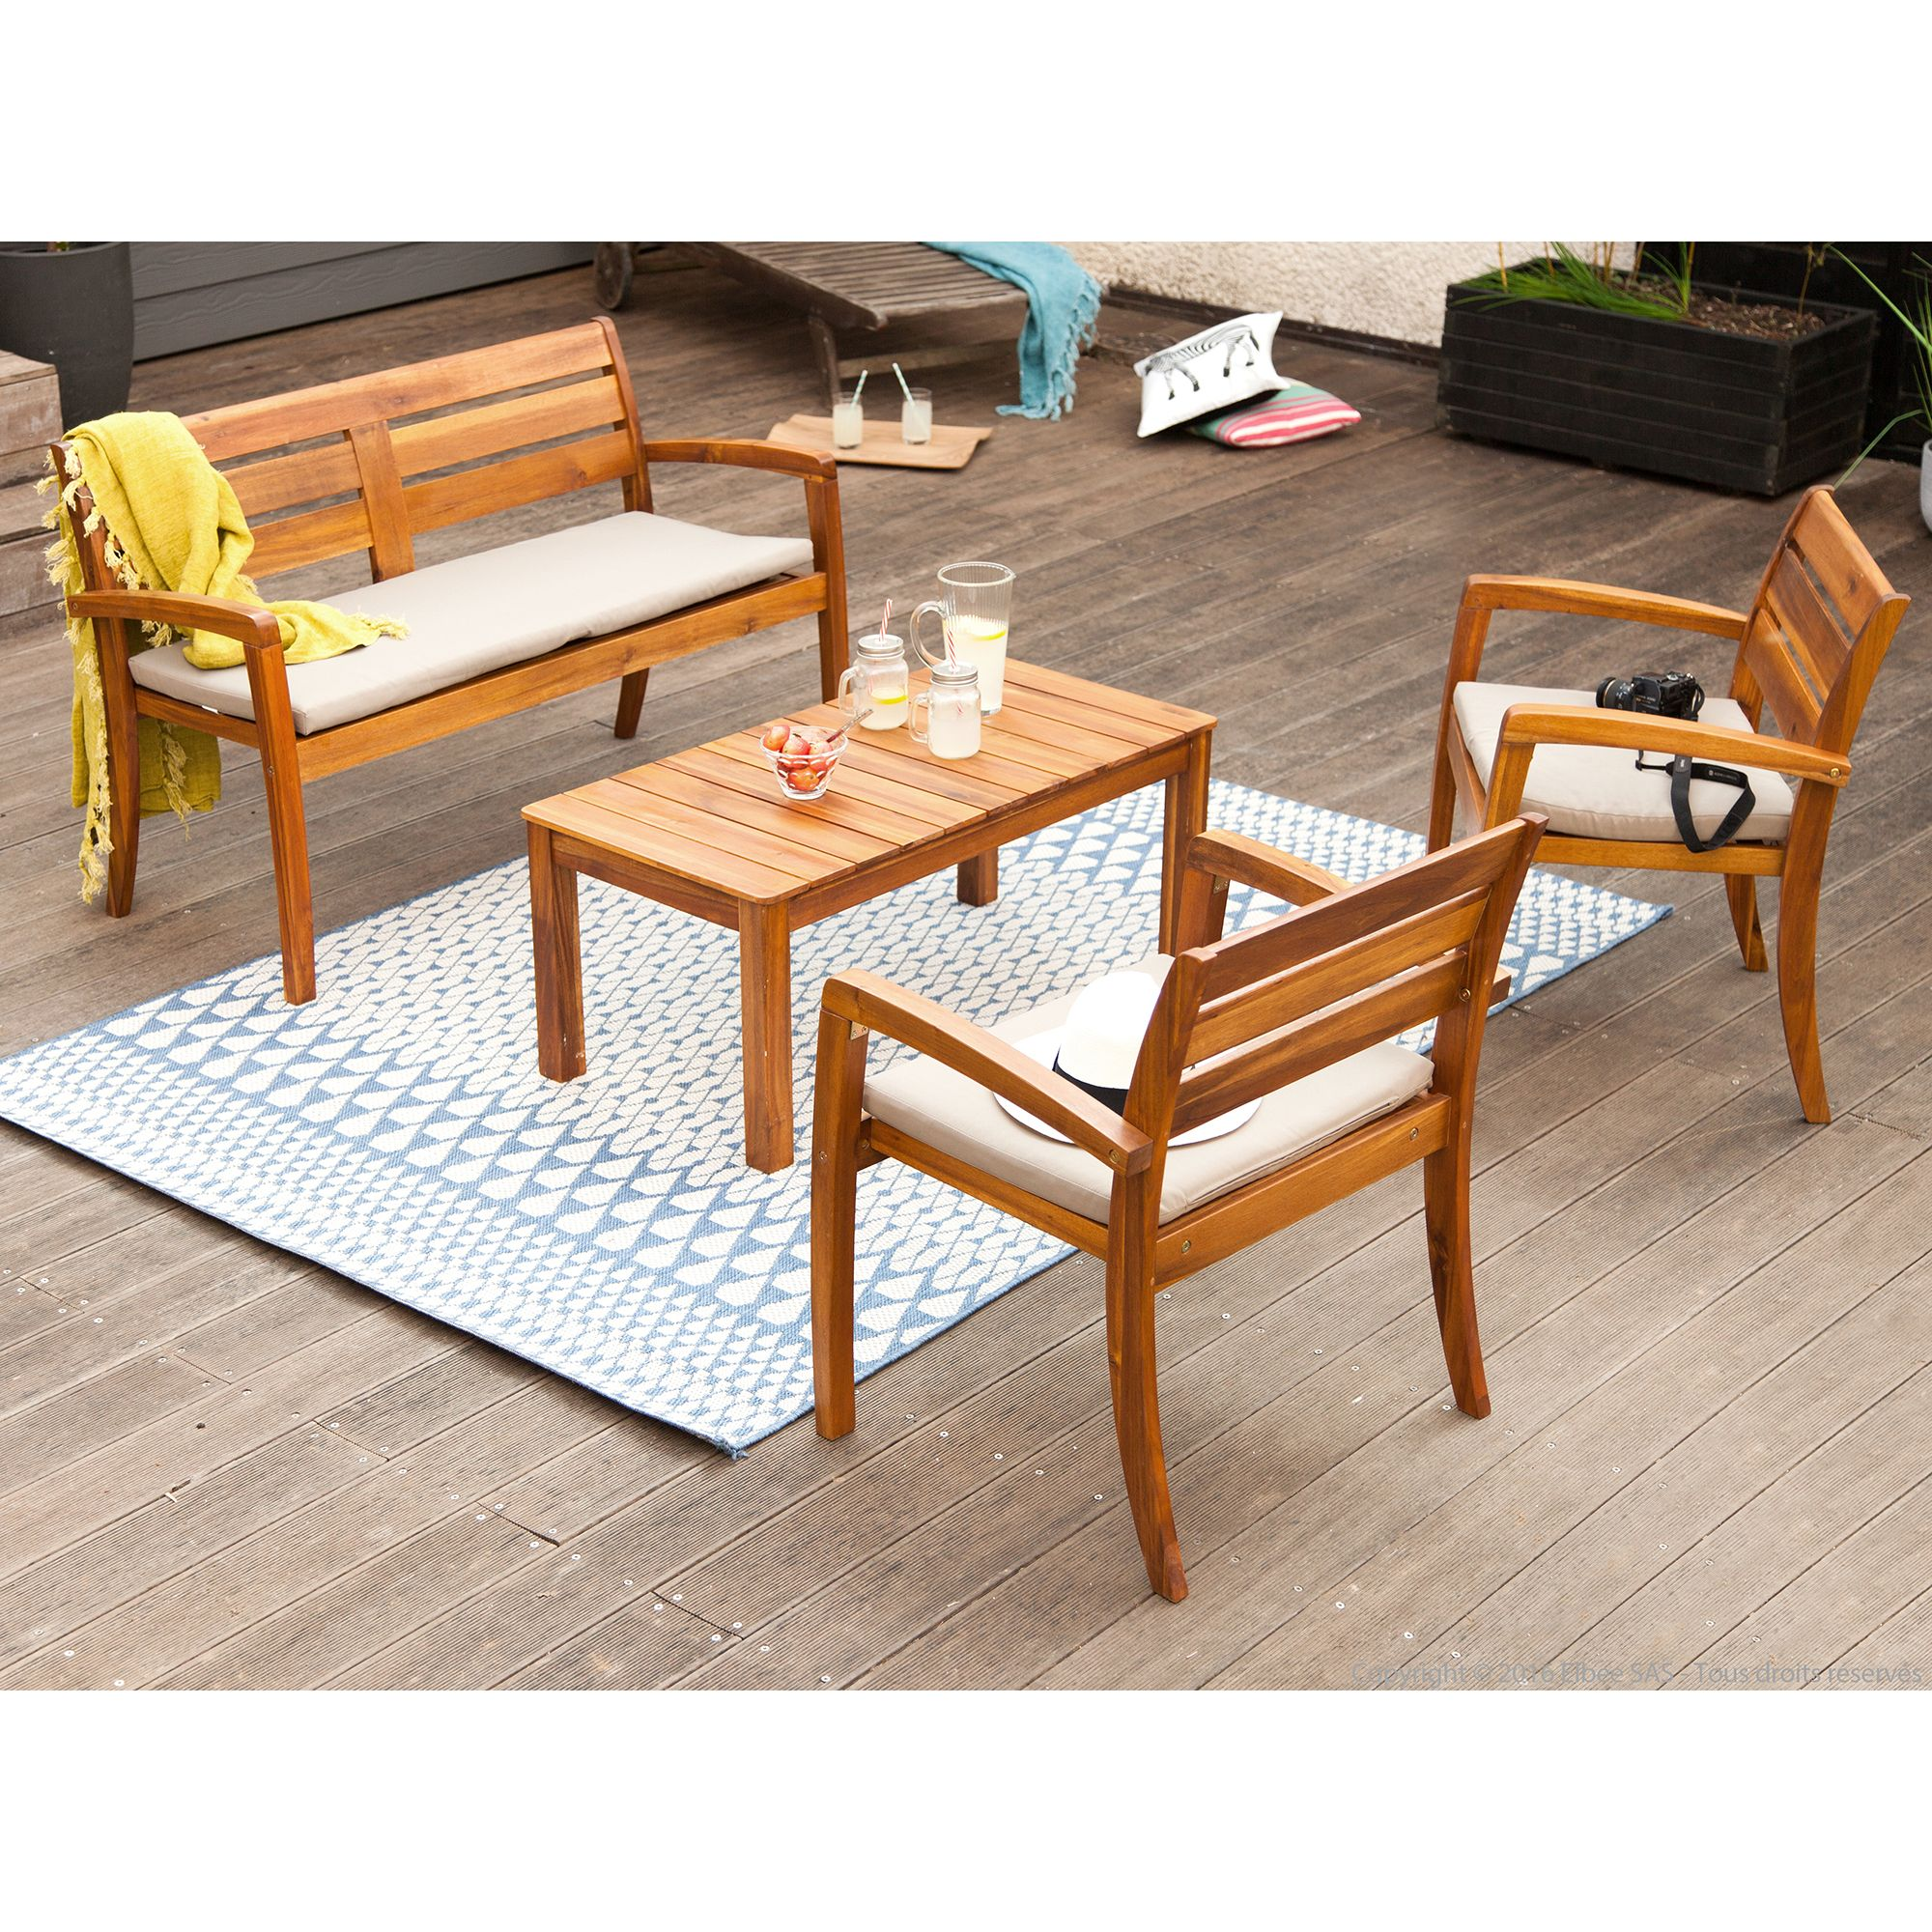 Salon de jardin 4 places en acacia : 1 table basse + 1 ...